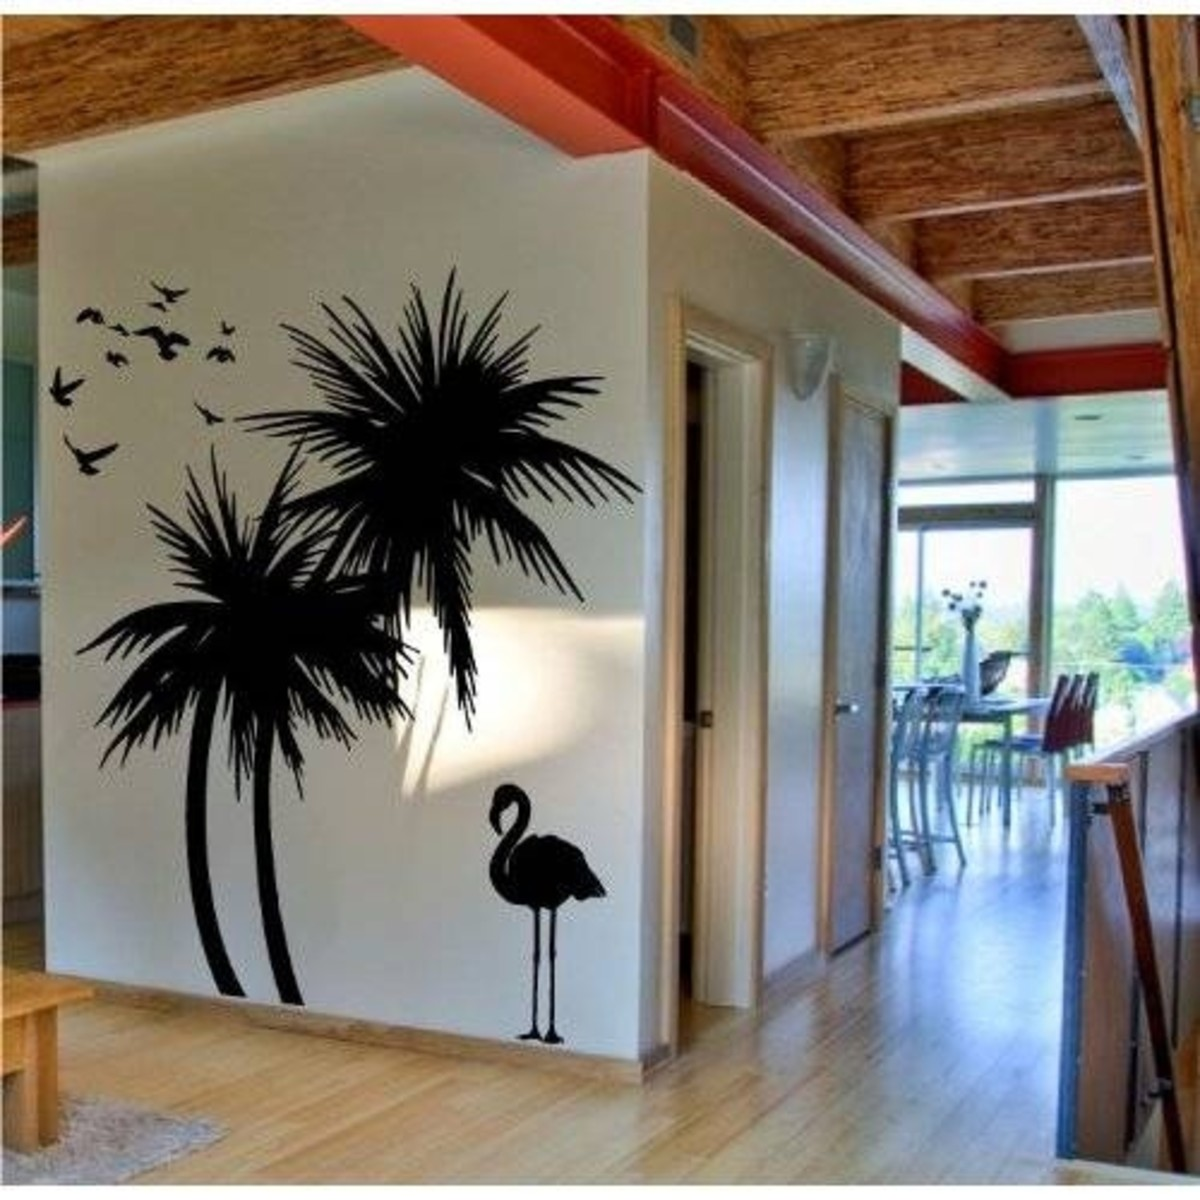 Palm Trees 6 Ft Wall Decal with Flamingo and Birds